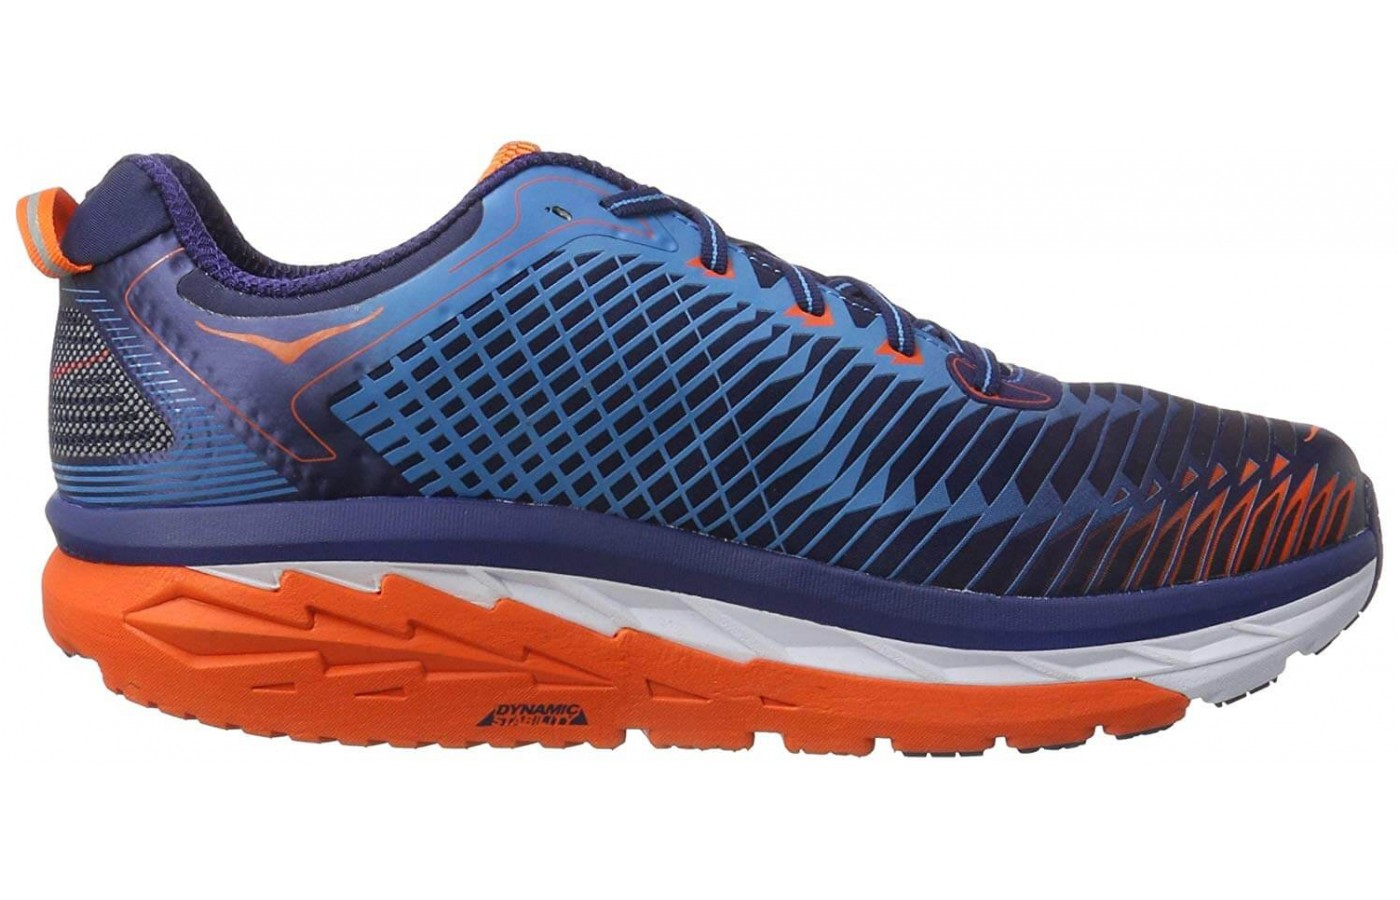 The midsole is molded in a way that gives extra support to the arches of the foot.